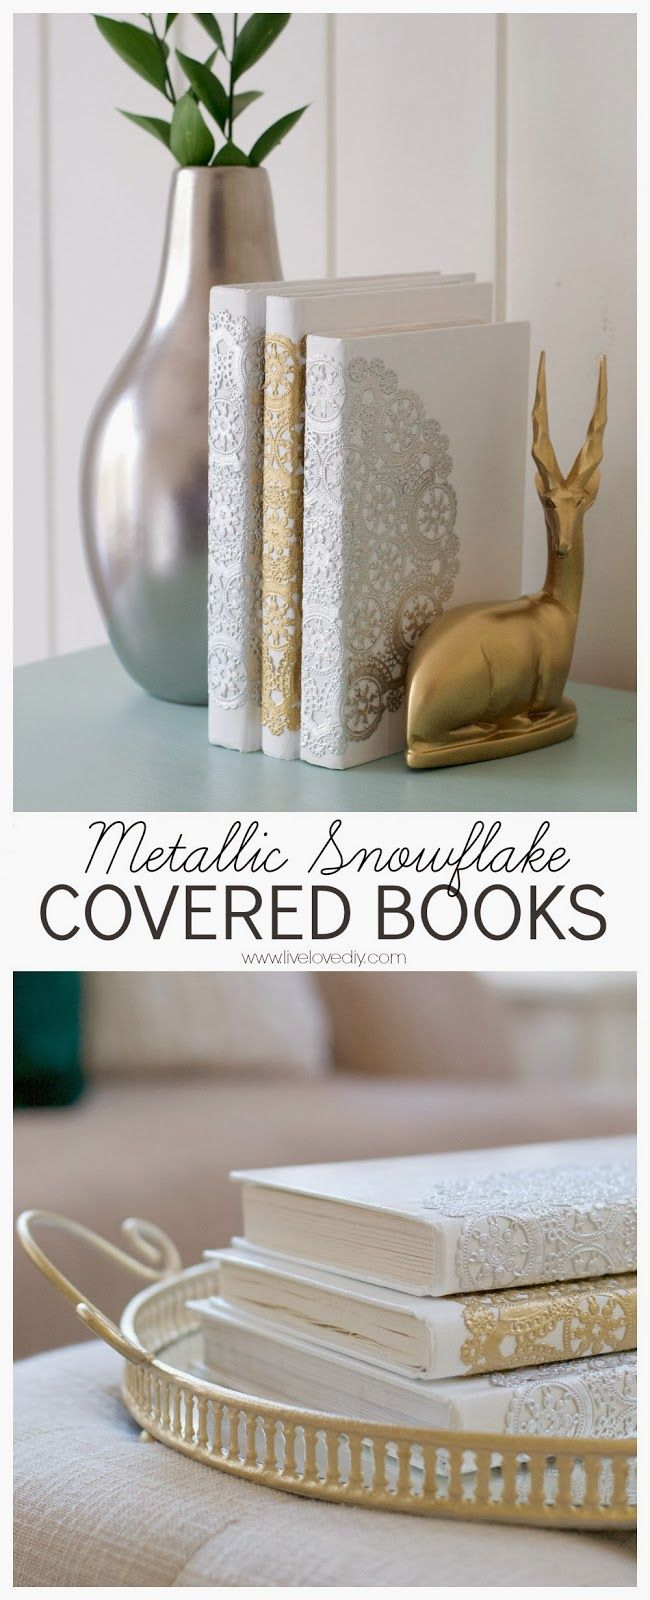 LOVE this idea! DIY covered books using white paint, Mod Podge, and doilies! Great handmade gift idea for the holidays!